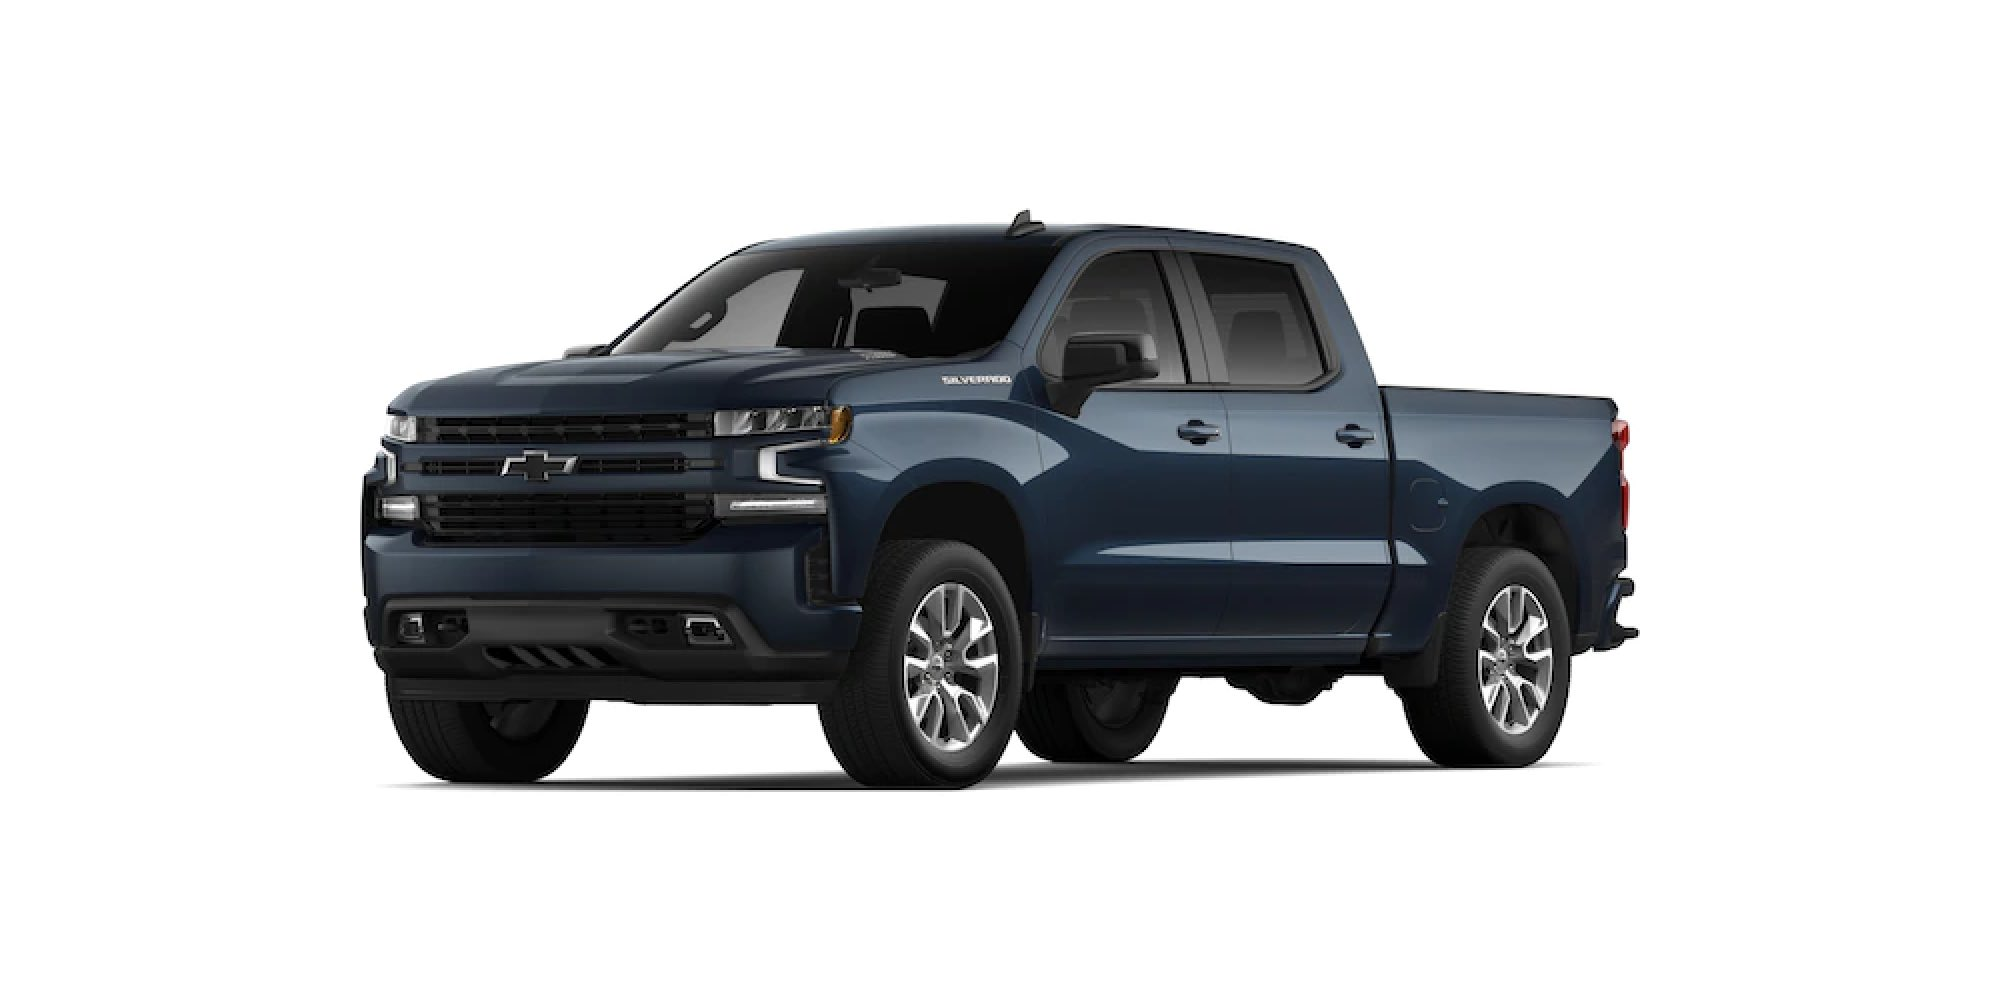 2021 Chevrolet Silverado 1500 in NORTHSKY BLUE METALLIC